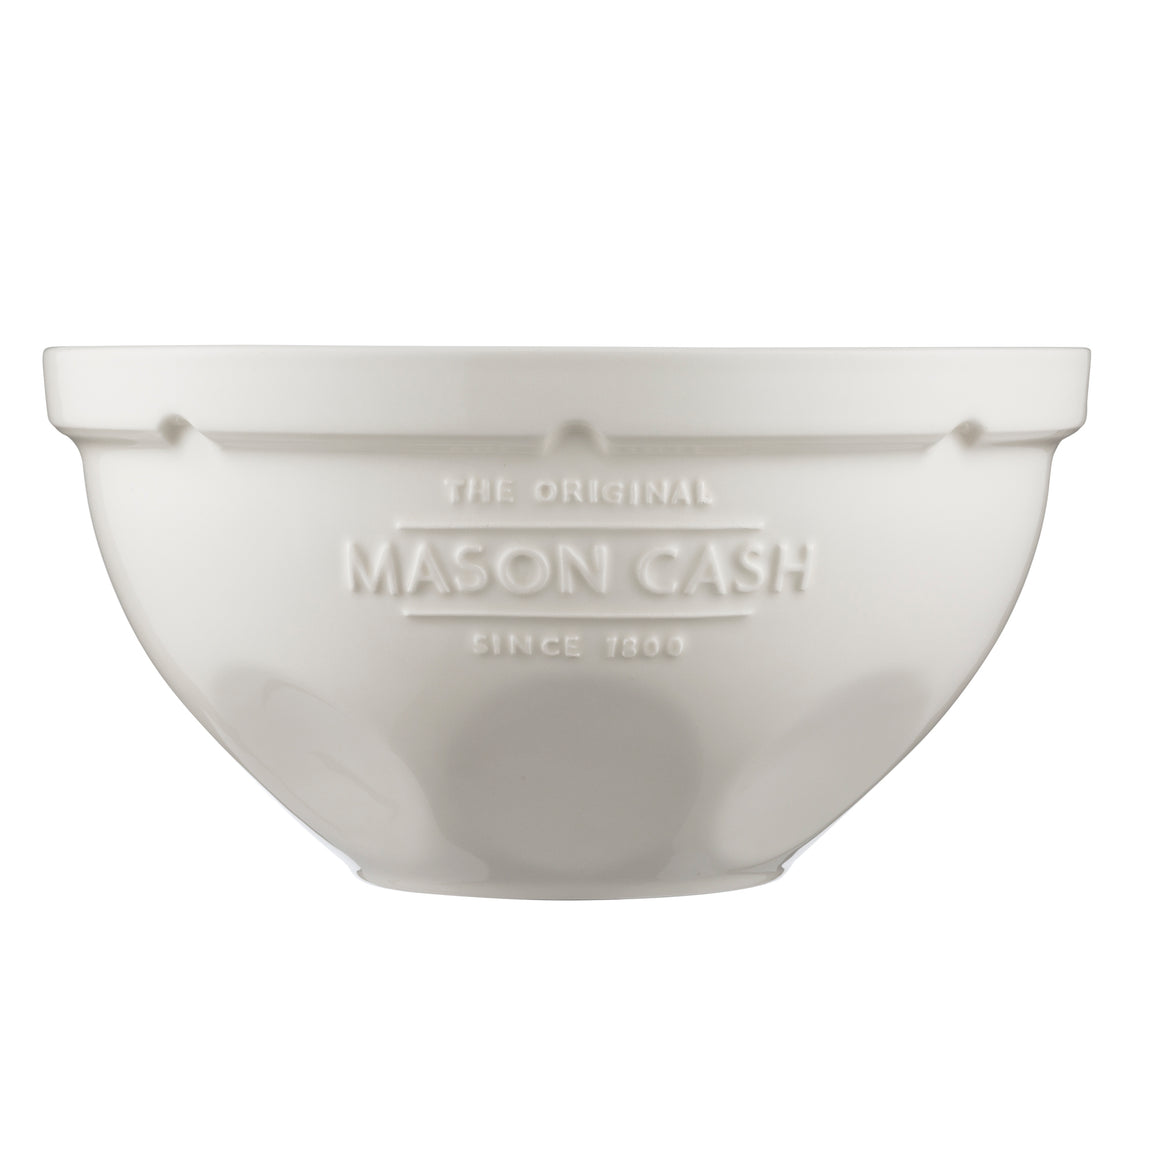 Innovative Kitchen Mixing Bowl - 29cm - 2008.198 - Mason Cash